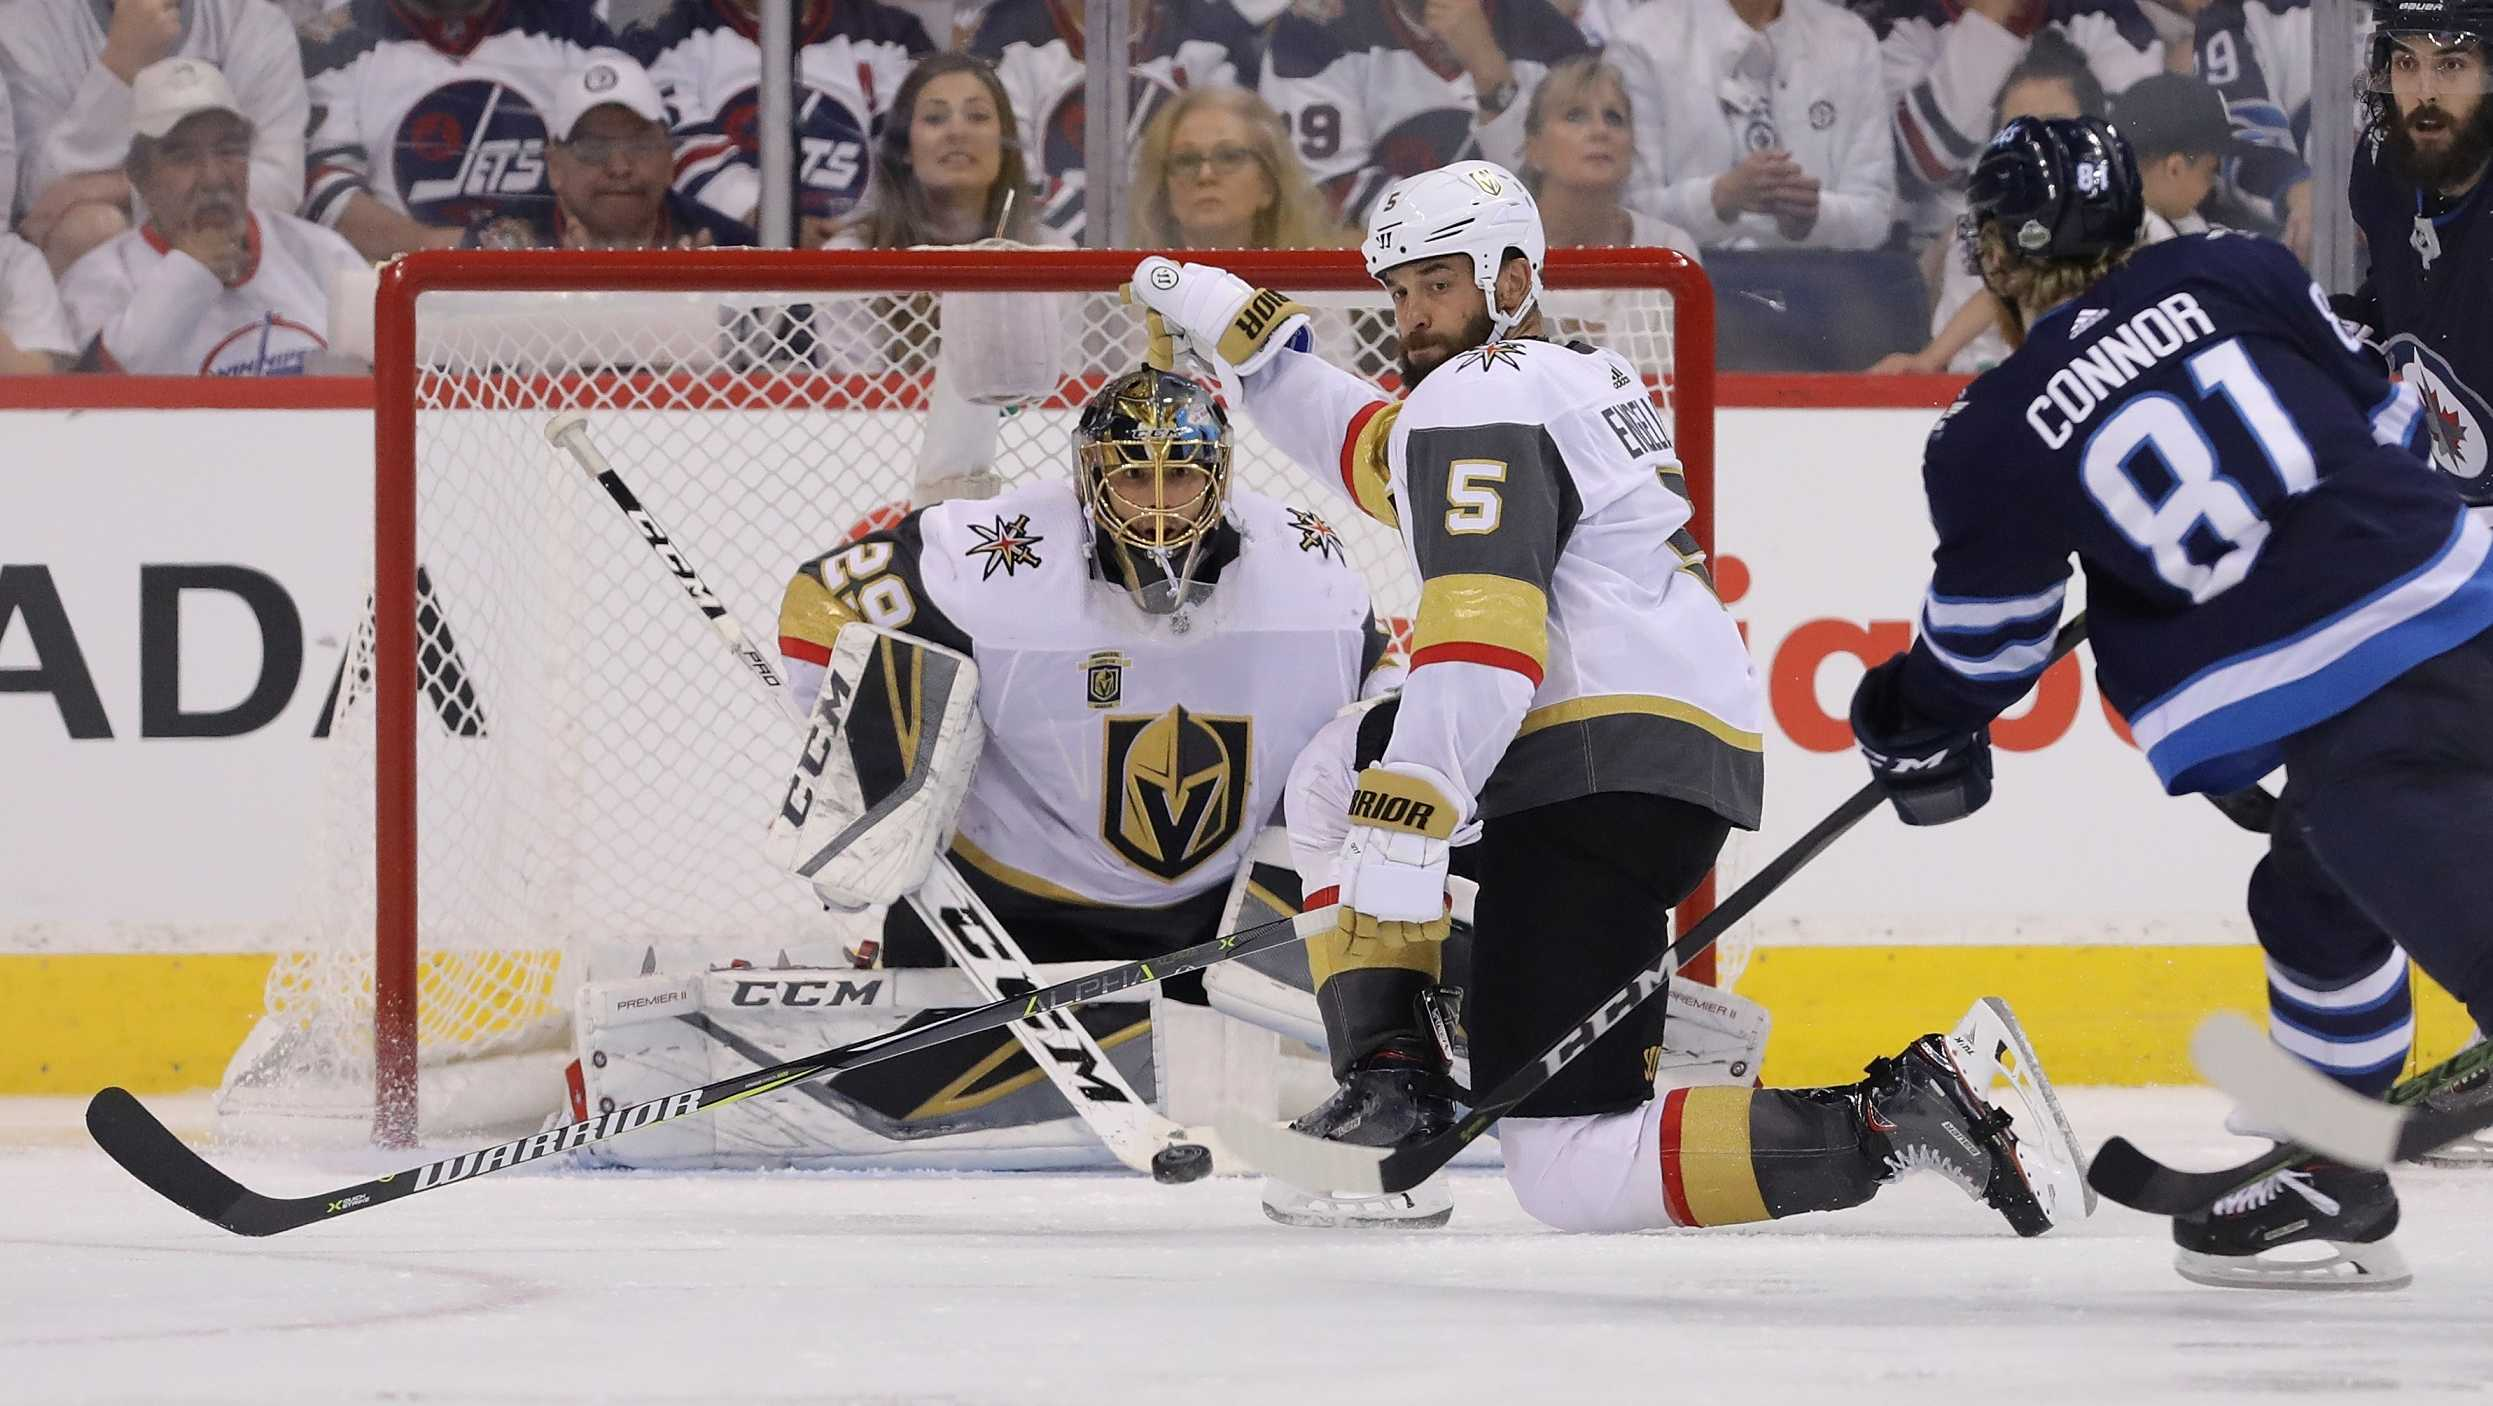 Marc-Andre Fleury #29 of the Vegas Golden Knights tends goal during the third period against the Winnipeg Jets in Game Five of the Western Conference Finals during the 2018 NHL Stanley Cup Playoffs at Bell MTS Place on May 20, 2018 in Winnipeg, Canada.